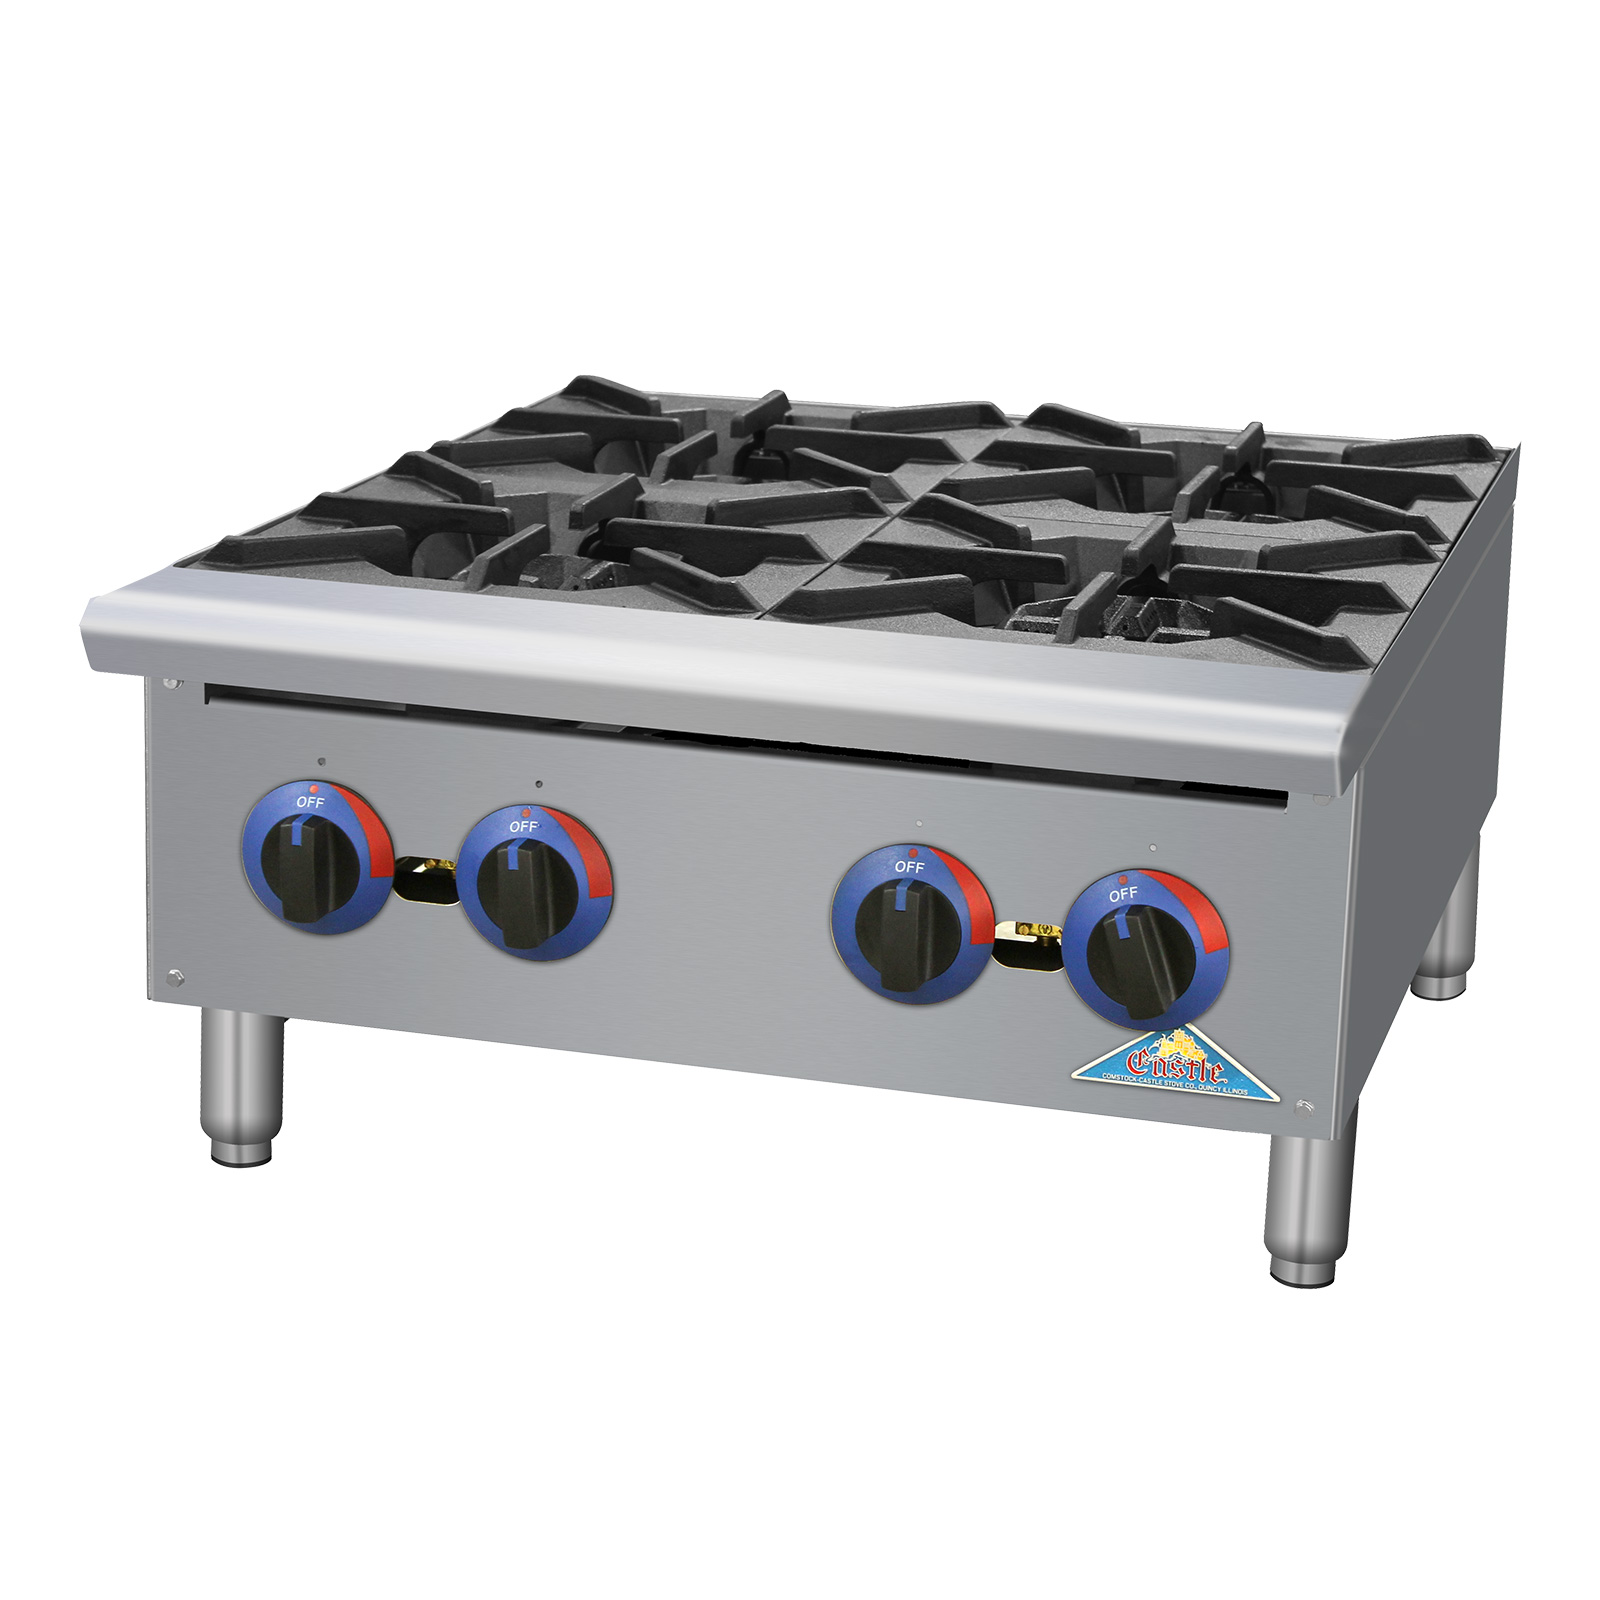 Comstock-Castle CCGHP-6 hotplate, countertop, gas